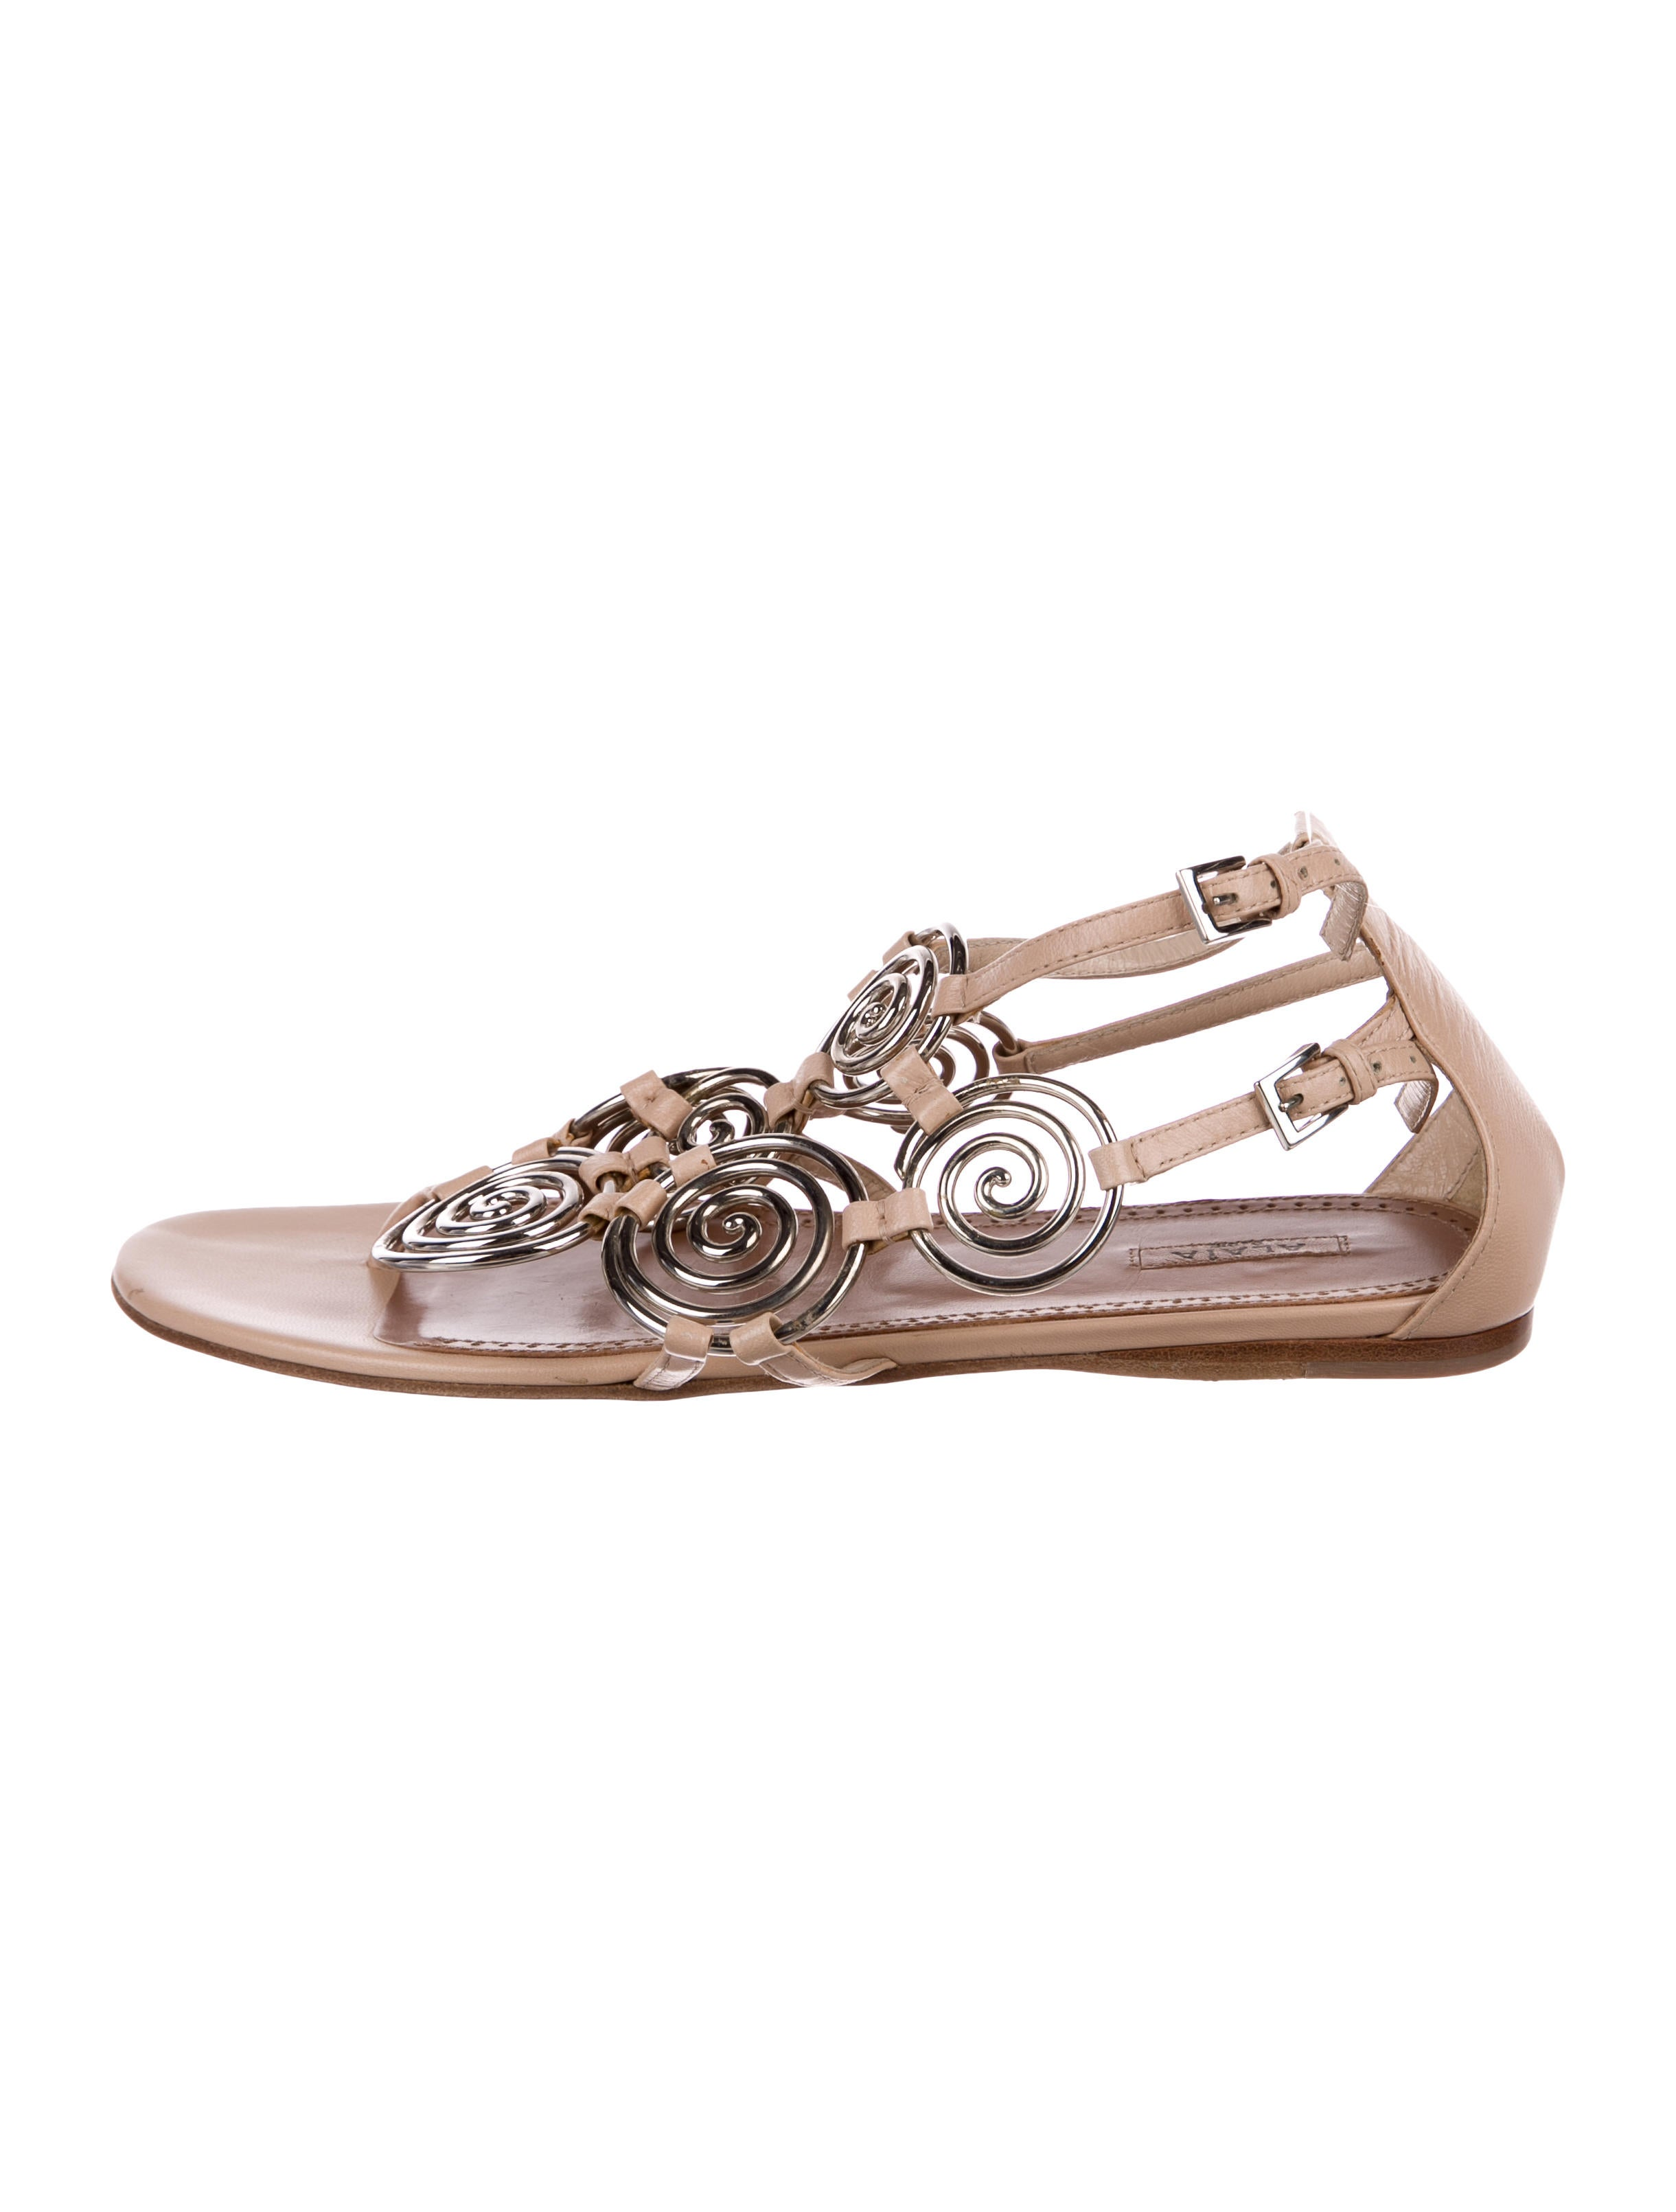 limited edition cheap online Alaïa Spiral Link Sandals tumblr cheap price best seller for sale CXeLQ